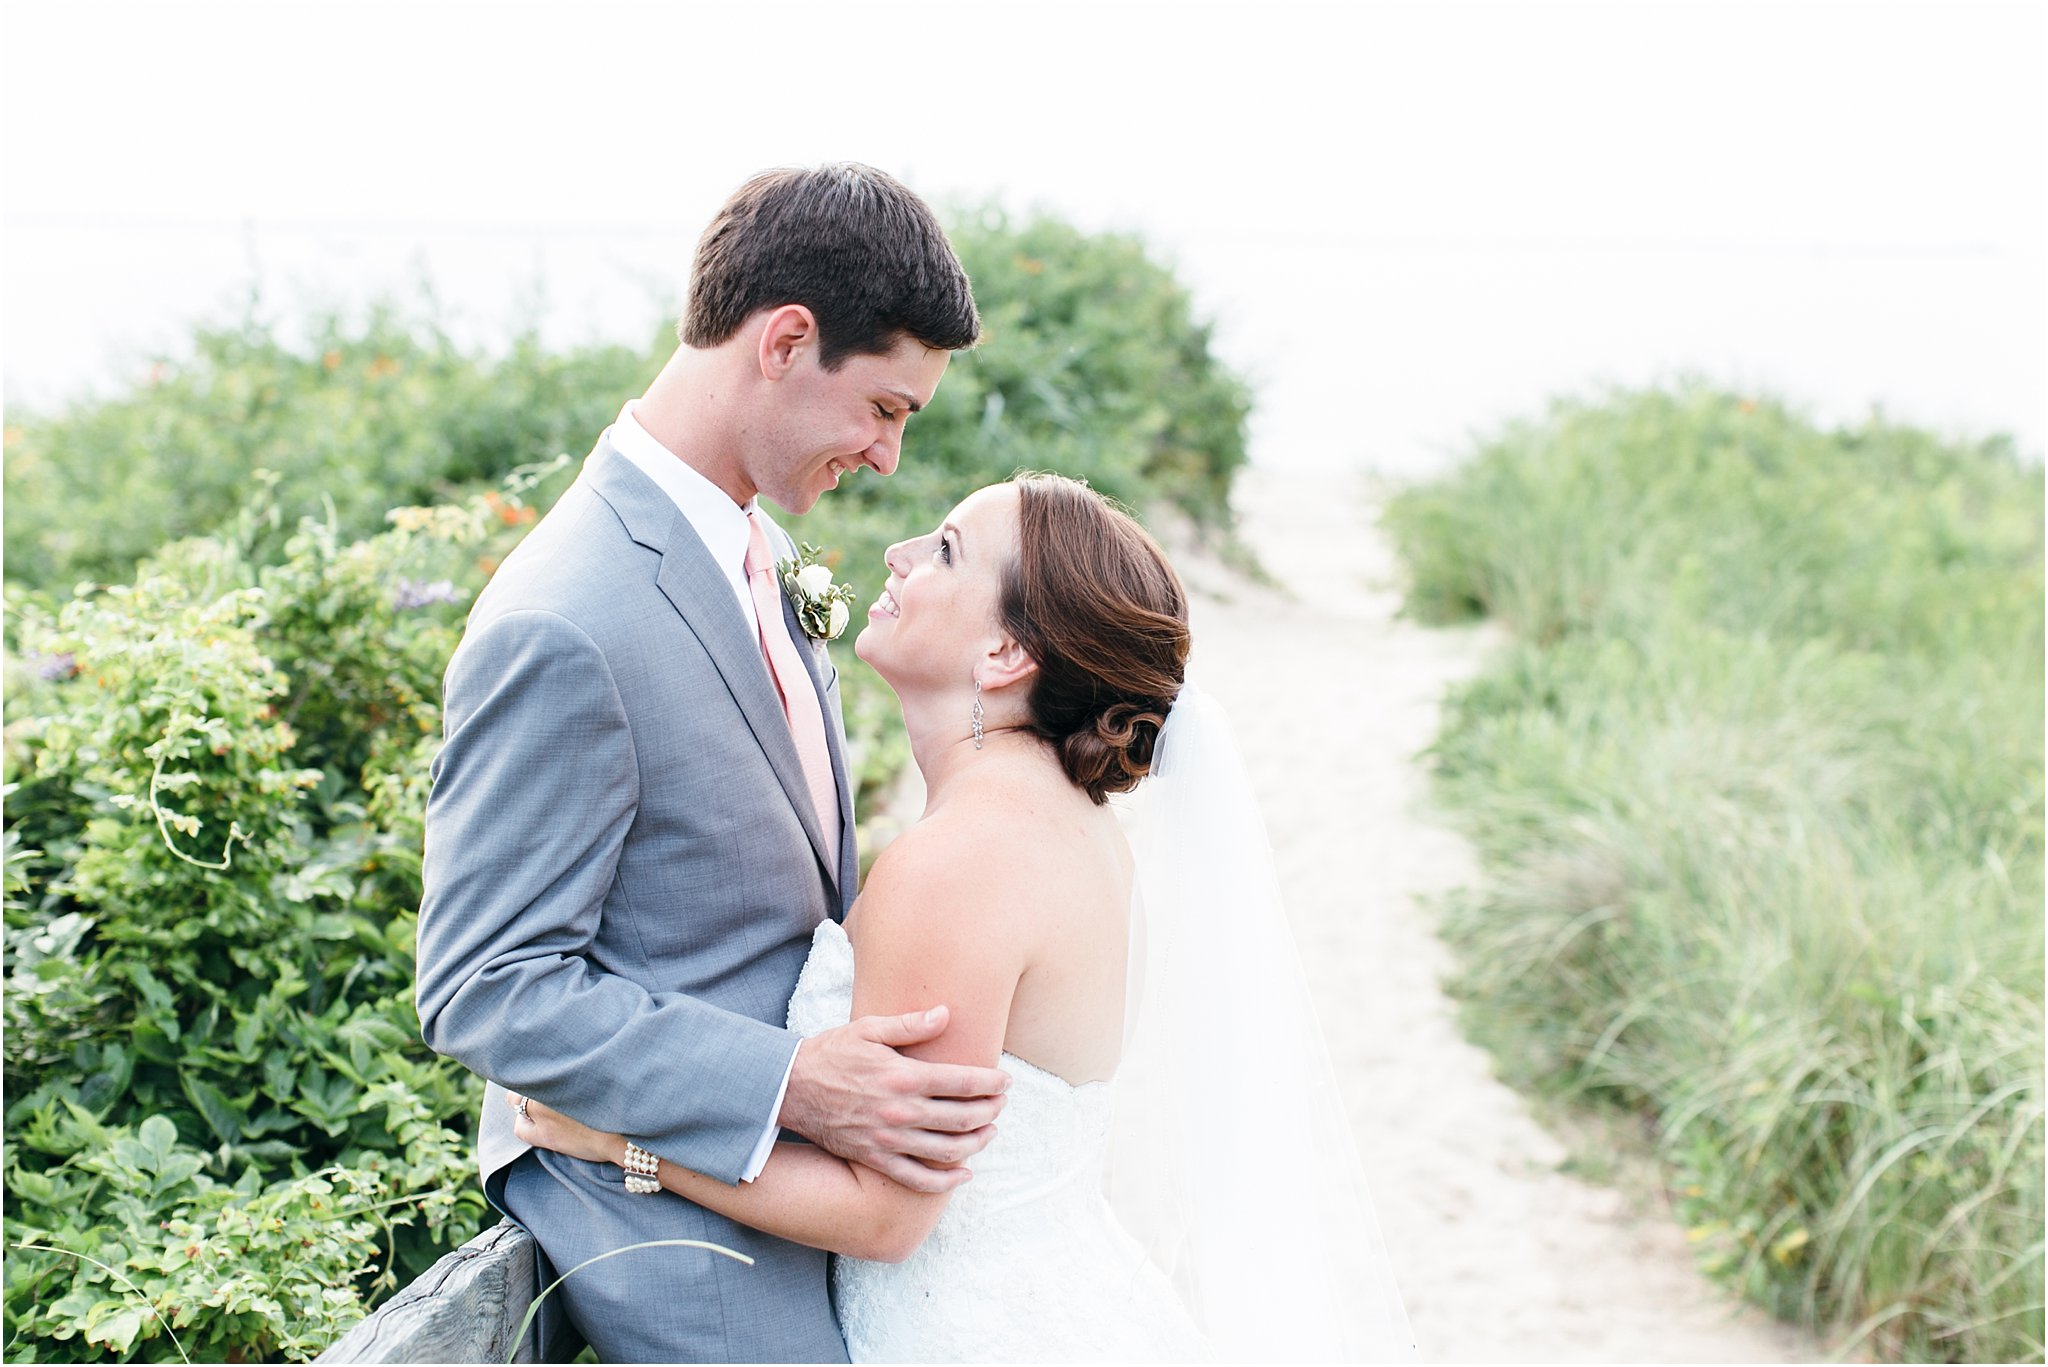 jessica_ryan_photography_wedding_photography_virginiabeach_virginia_candid_authentic_wedding_portraits_marina_shores_yacht_club_chesapeake_bay_1910